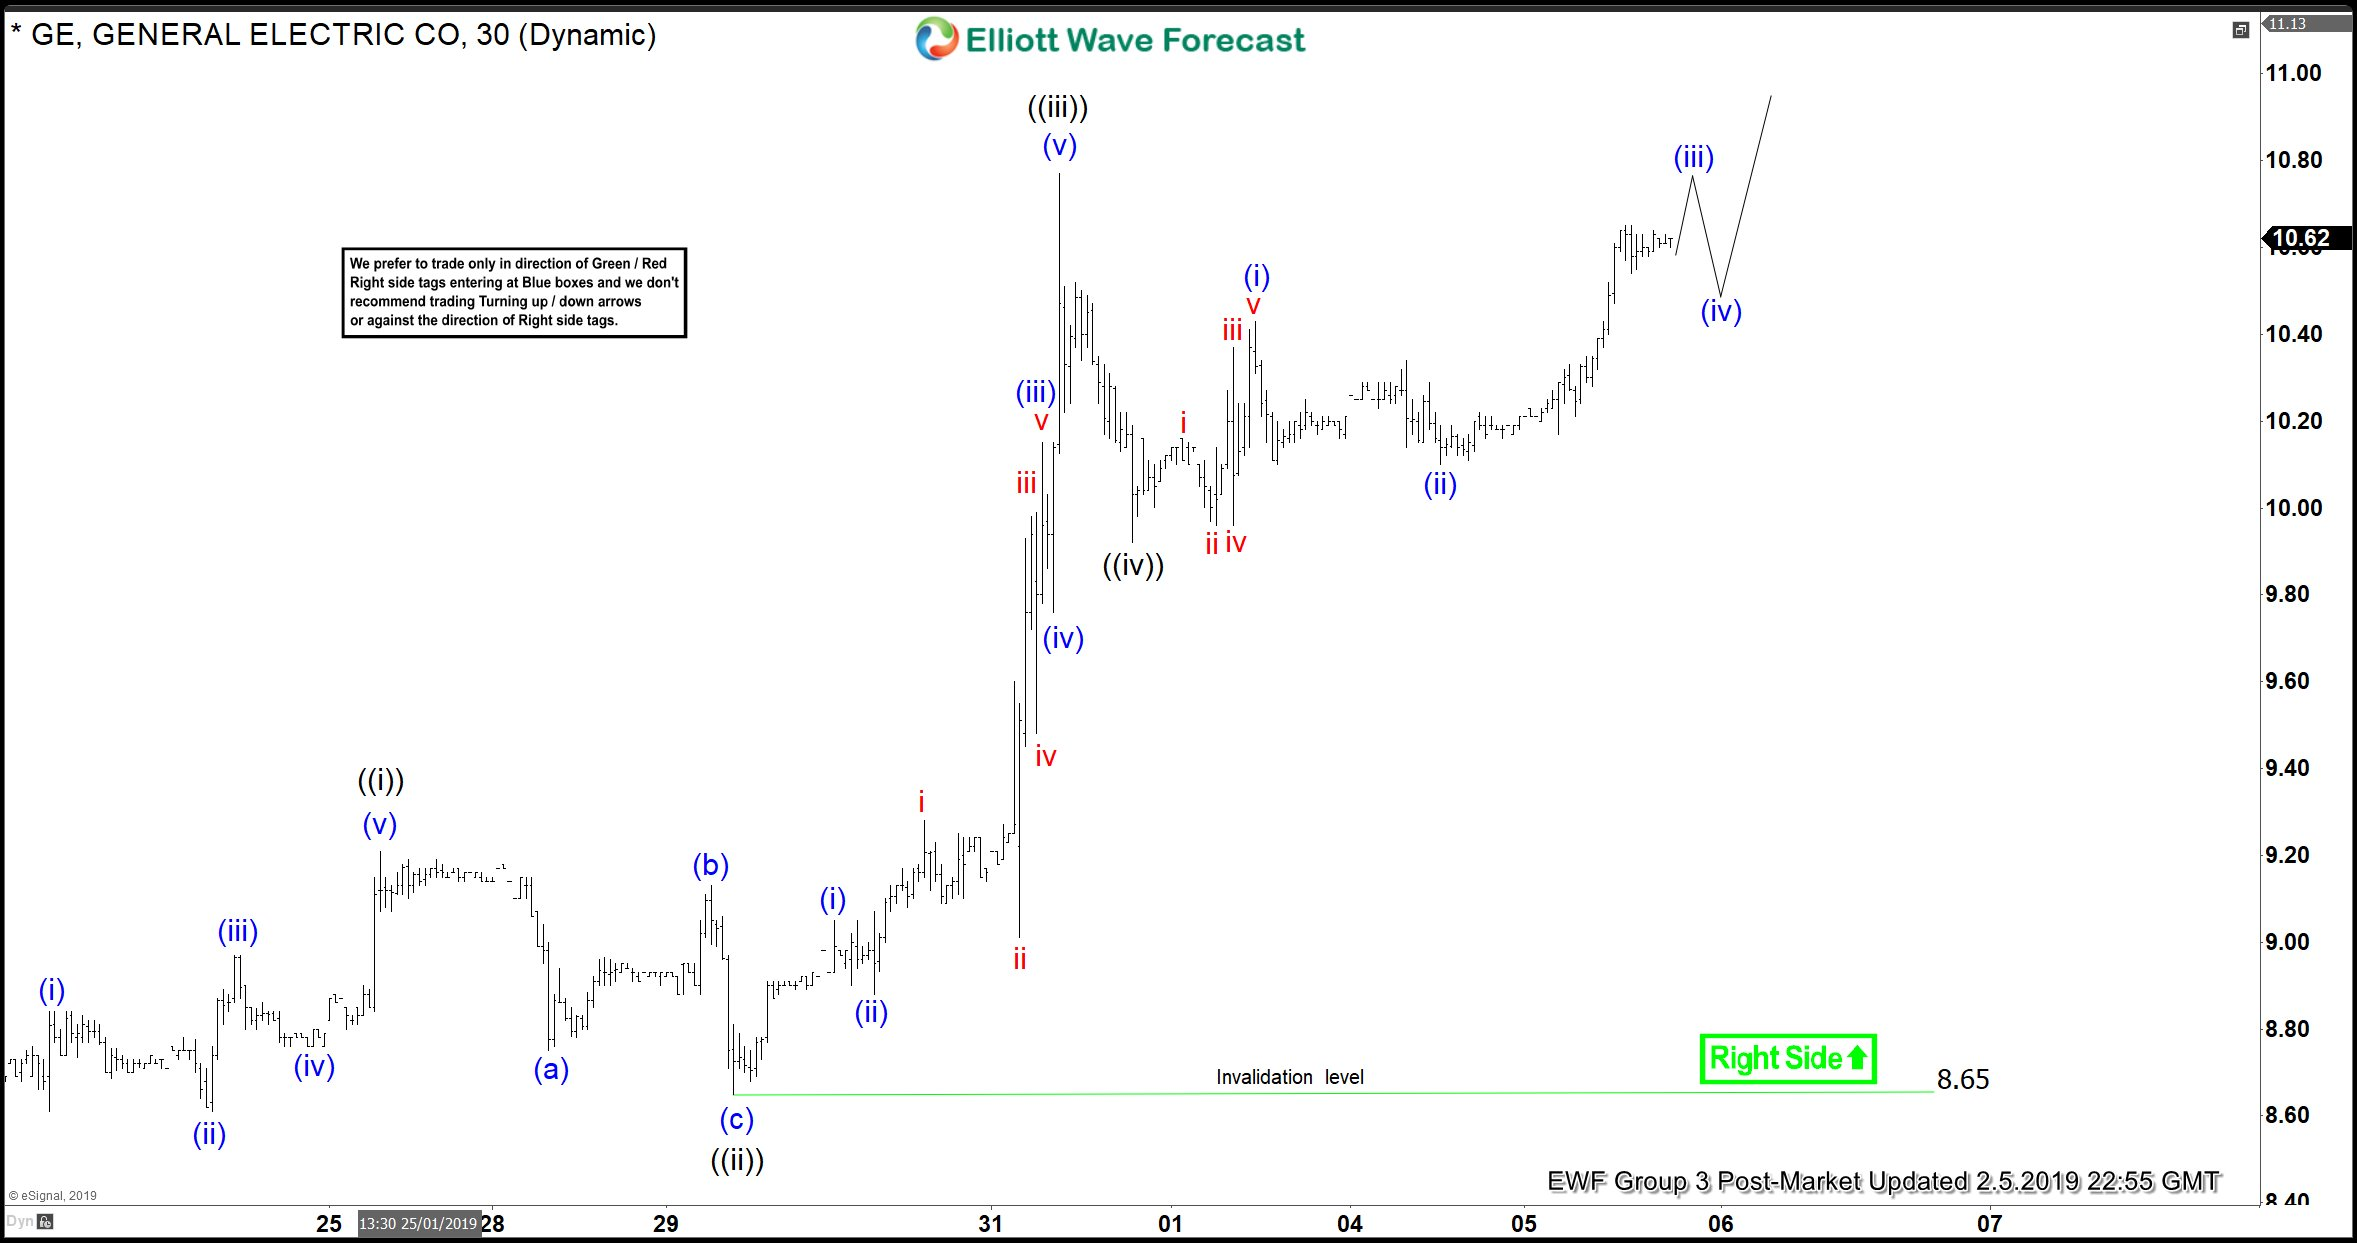 Elliott Wave View Suggest More Upside in General Electric